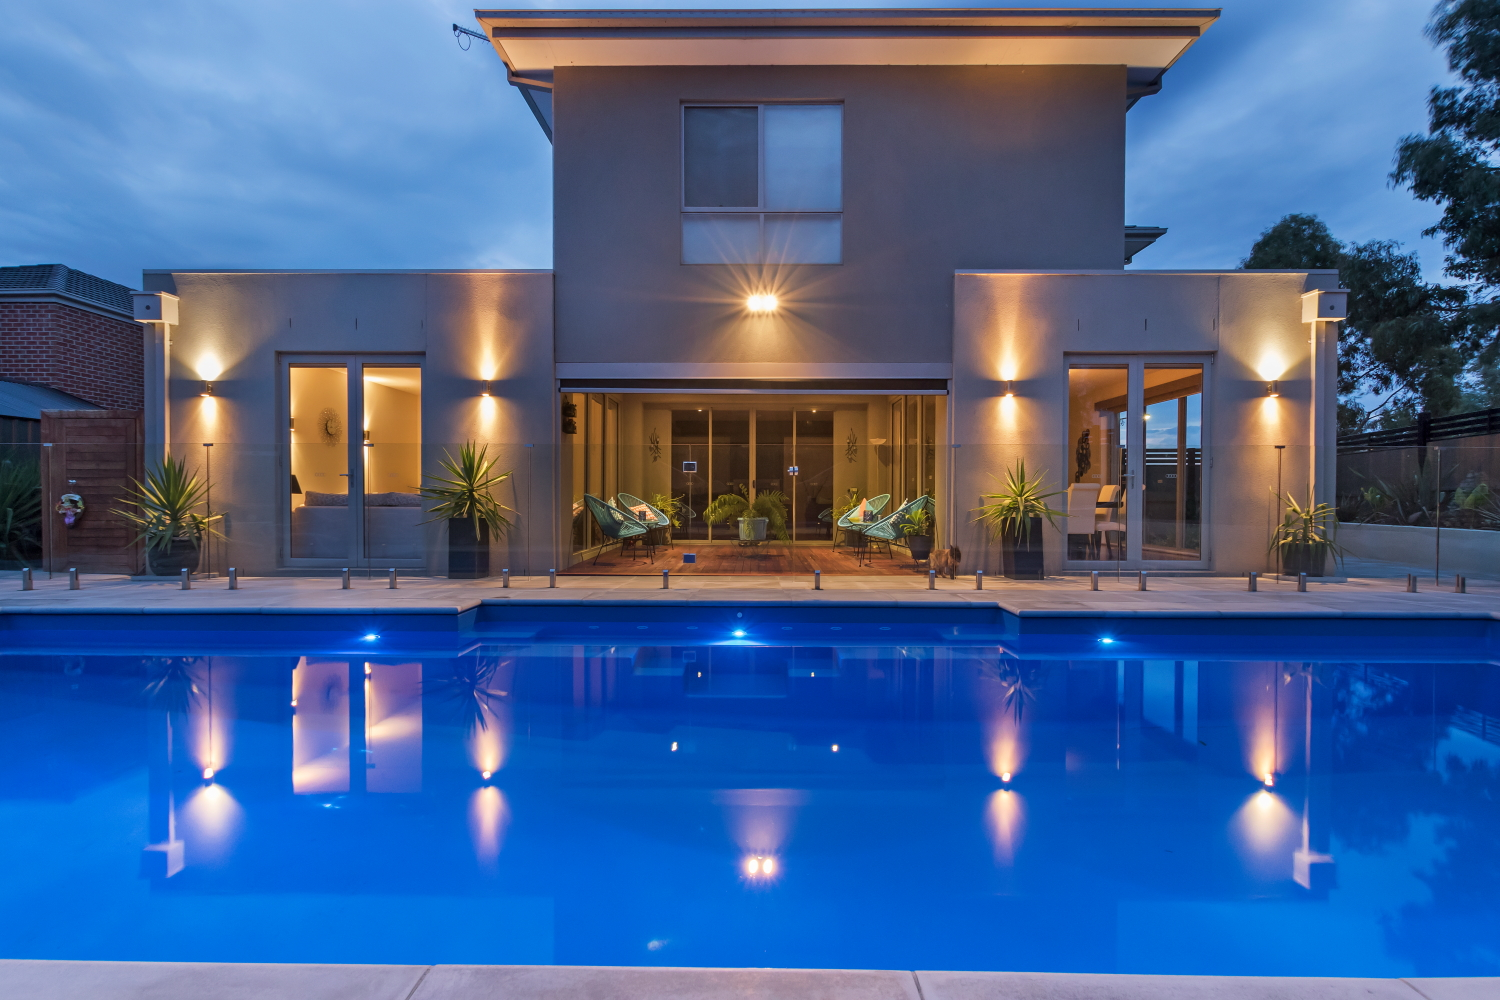 Rainwise Pools Melbourne - Why Install A Pool During Winter? Pool Tips & Info